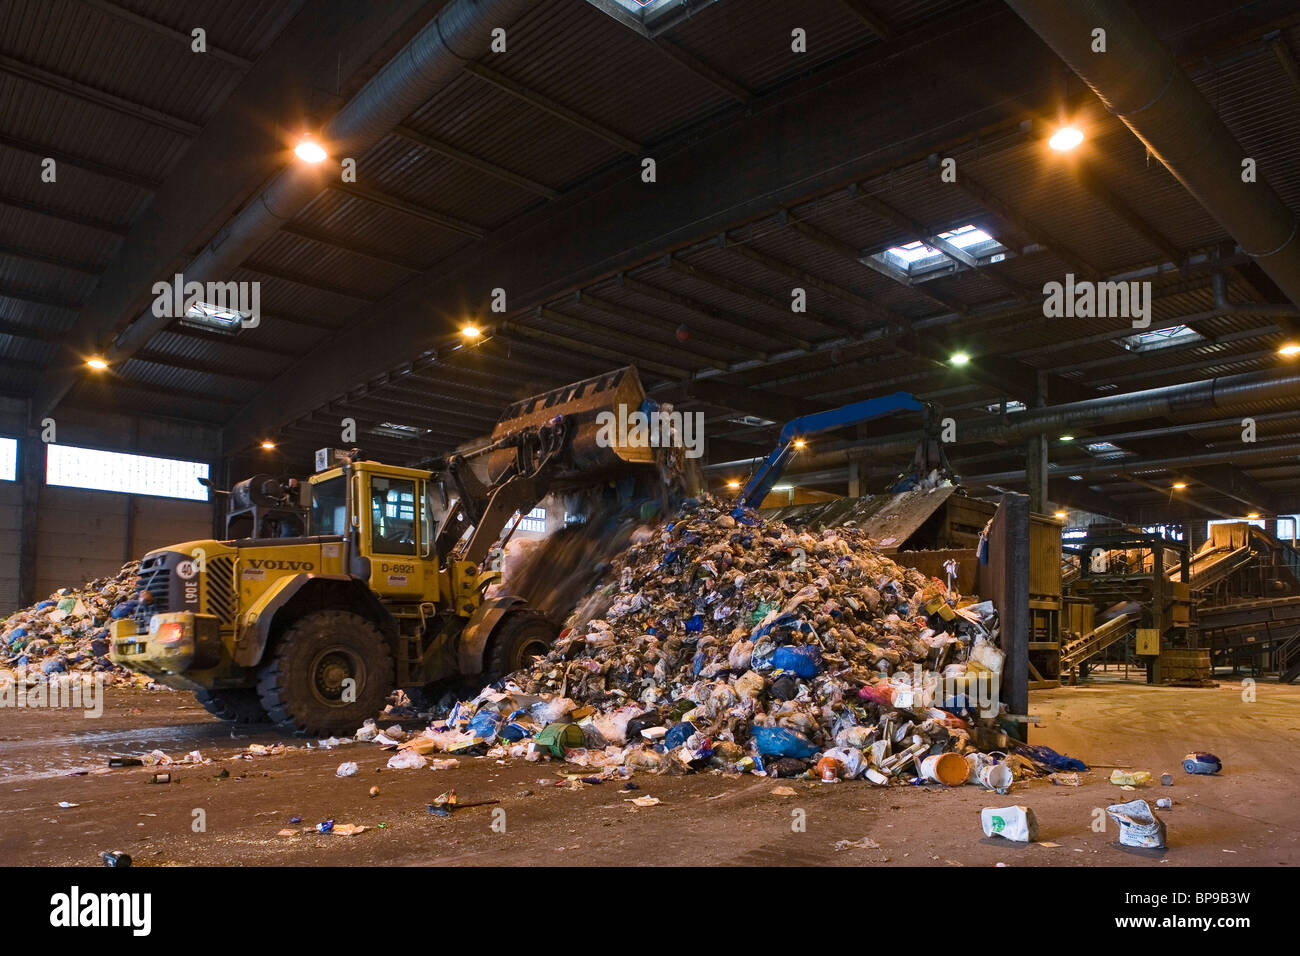 sorting at the waste disposal centre in Lahe Hanover, Lower Saxony, Germany - Stock Image